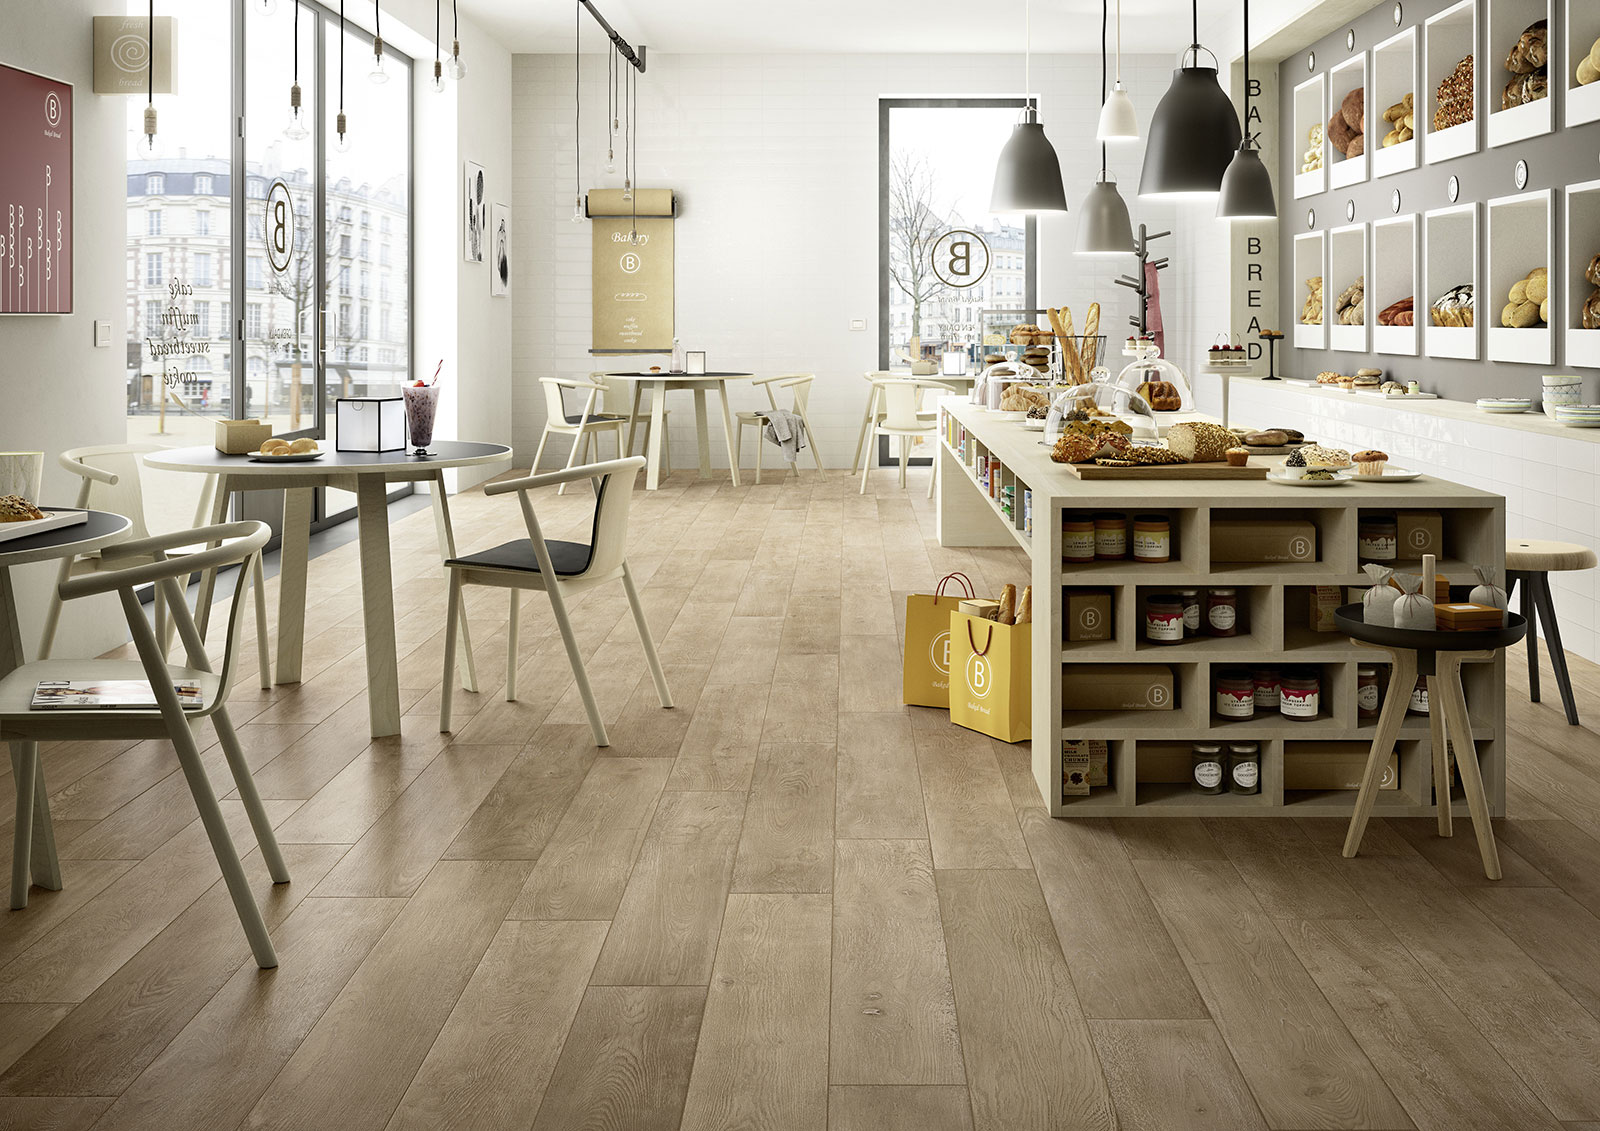 Carrelage imitation bois et parquet marazzi for Carrelage imitation parquet